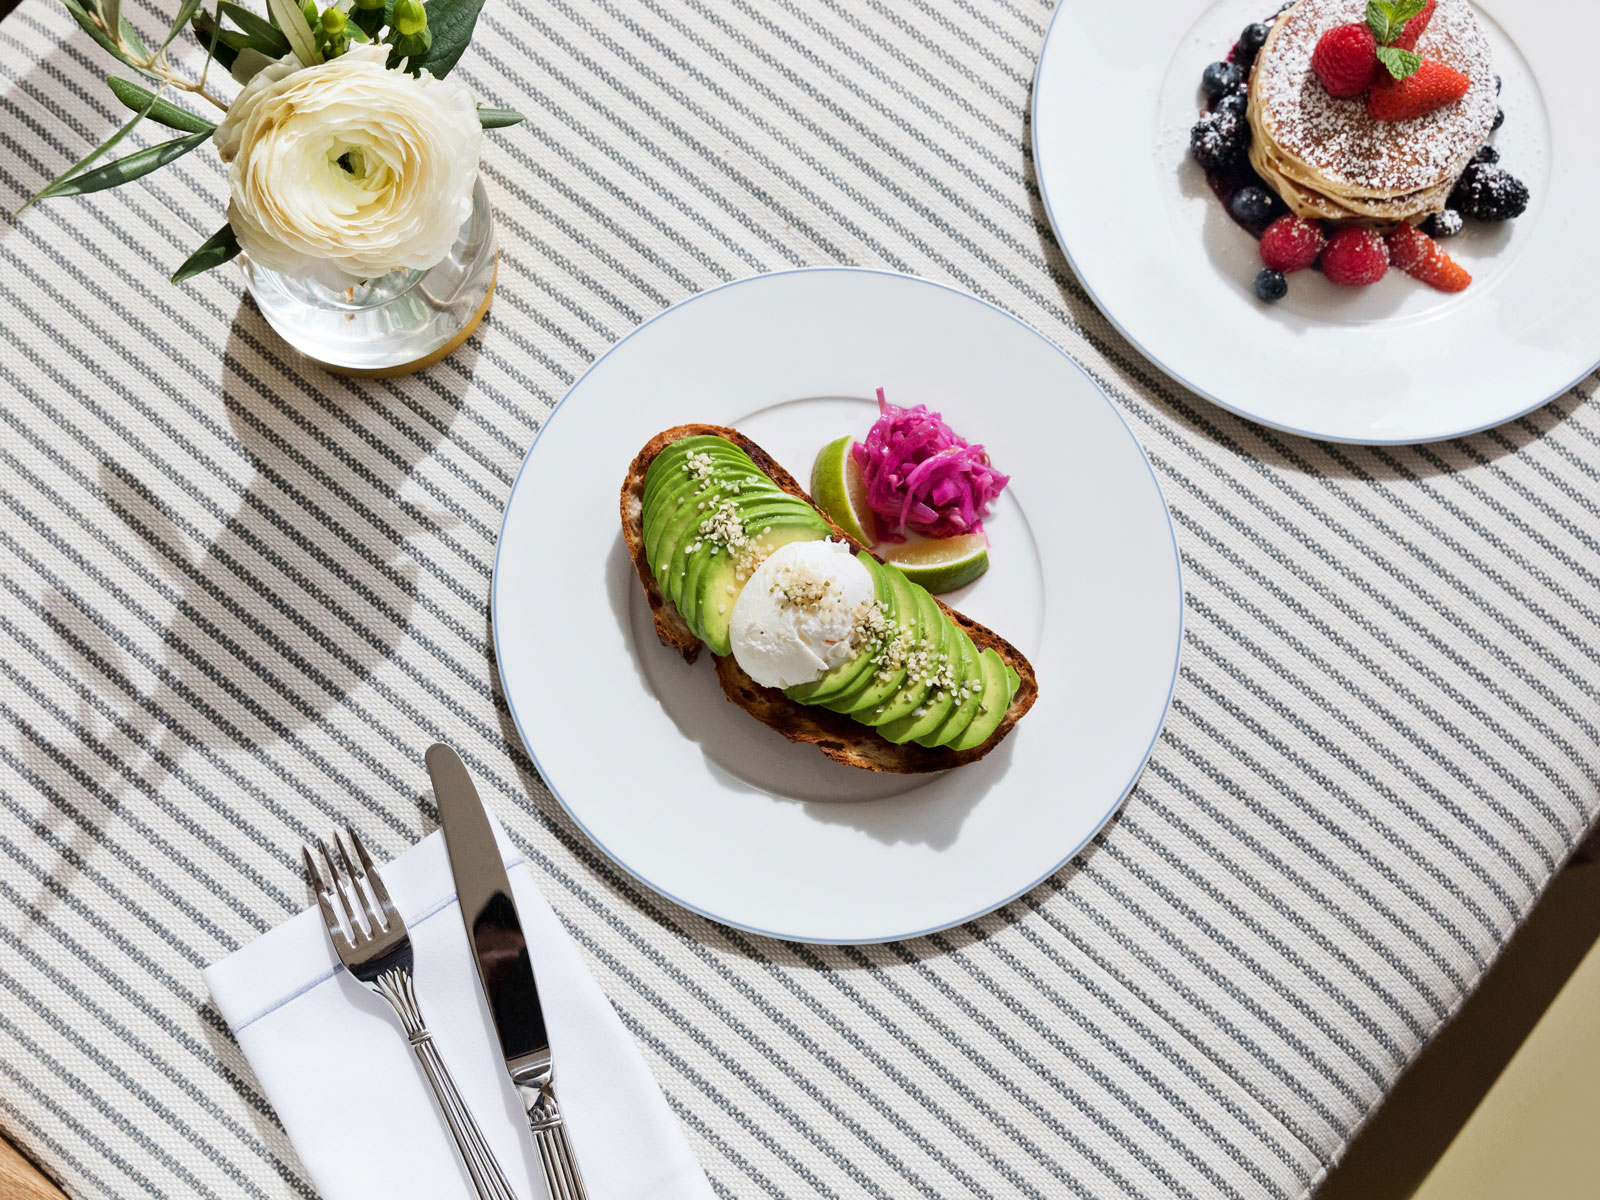 Malibu Farms avocado toast